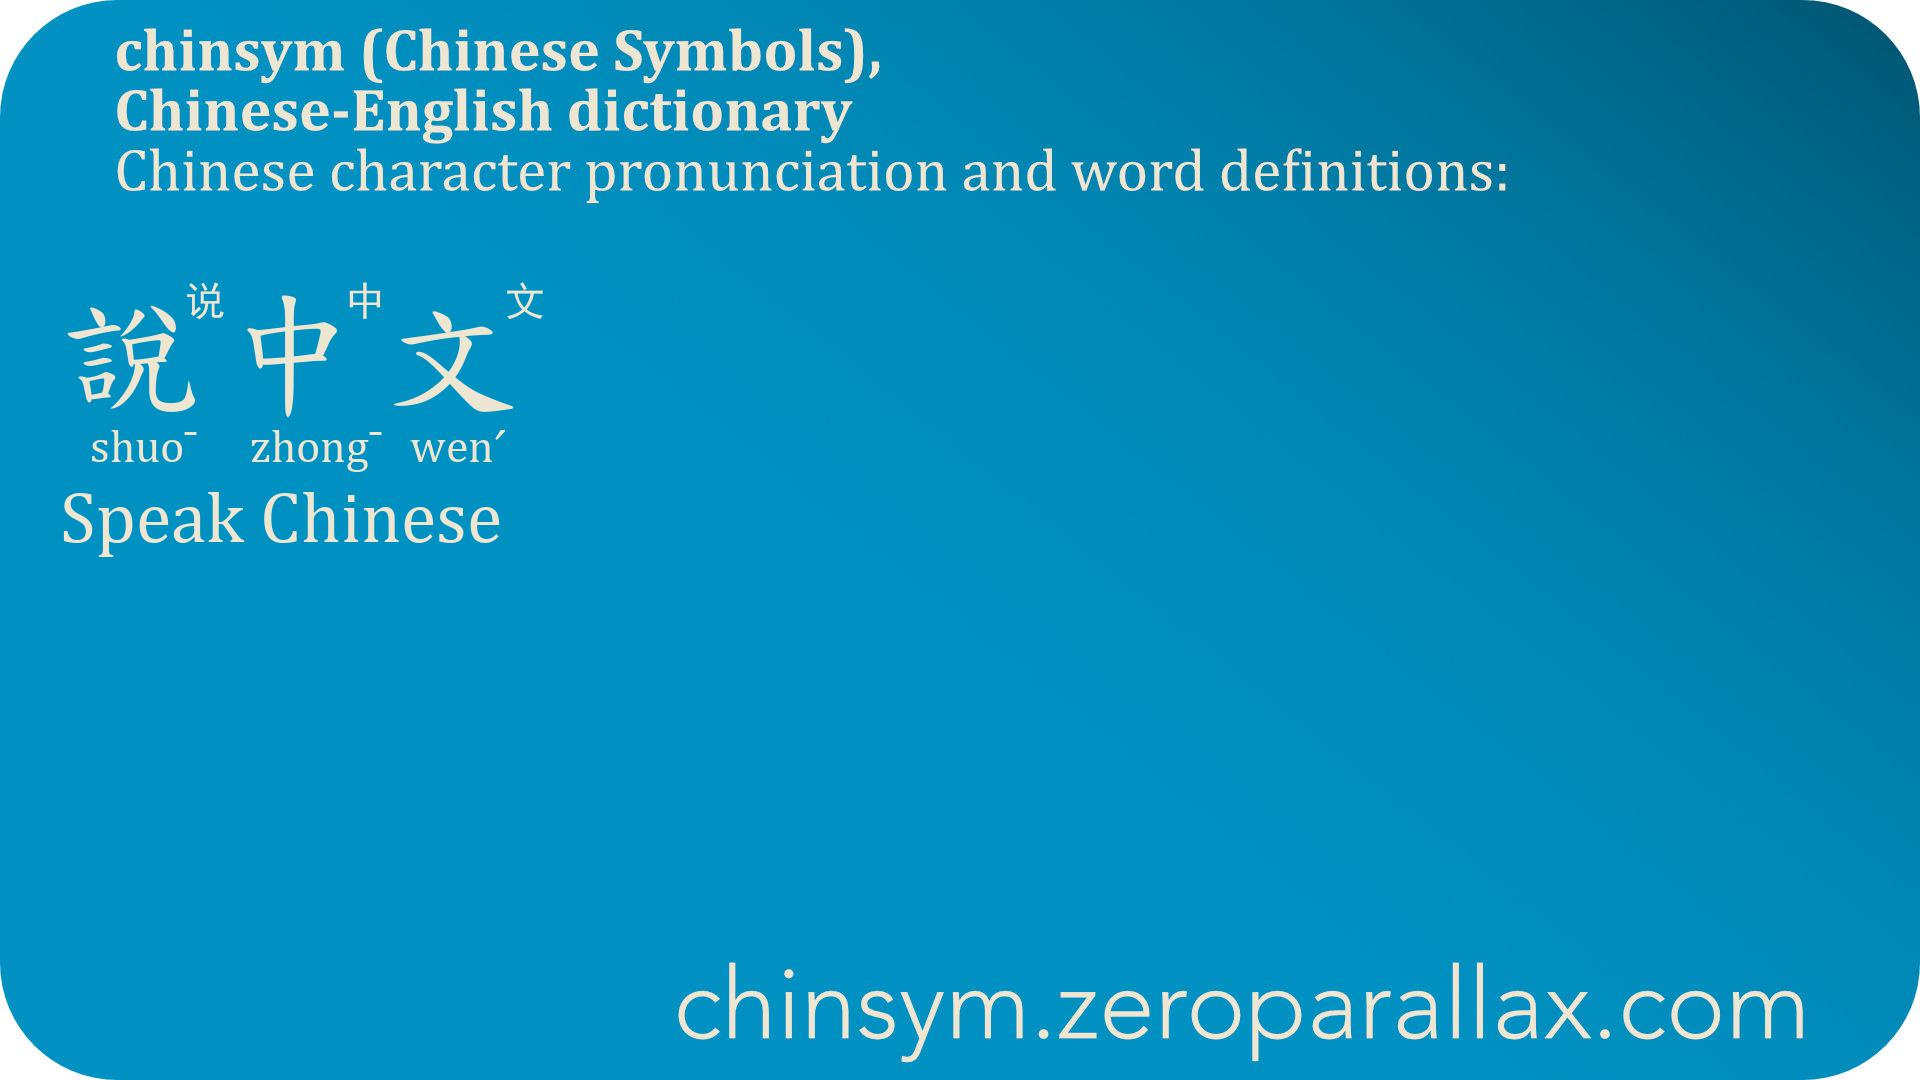 說中文  (shuo¯ zhong¯ wenˊ) 说中文 : Speak Chinese. chinsym.zeroparallax.com